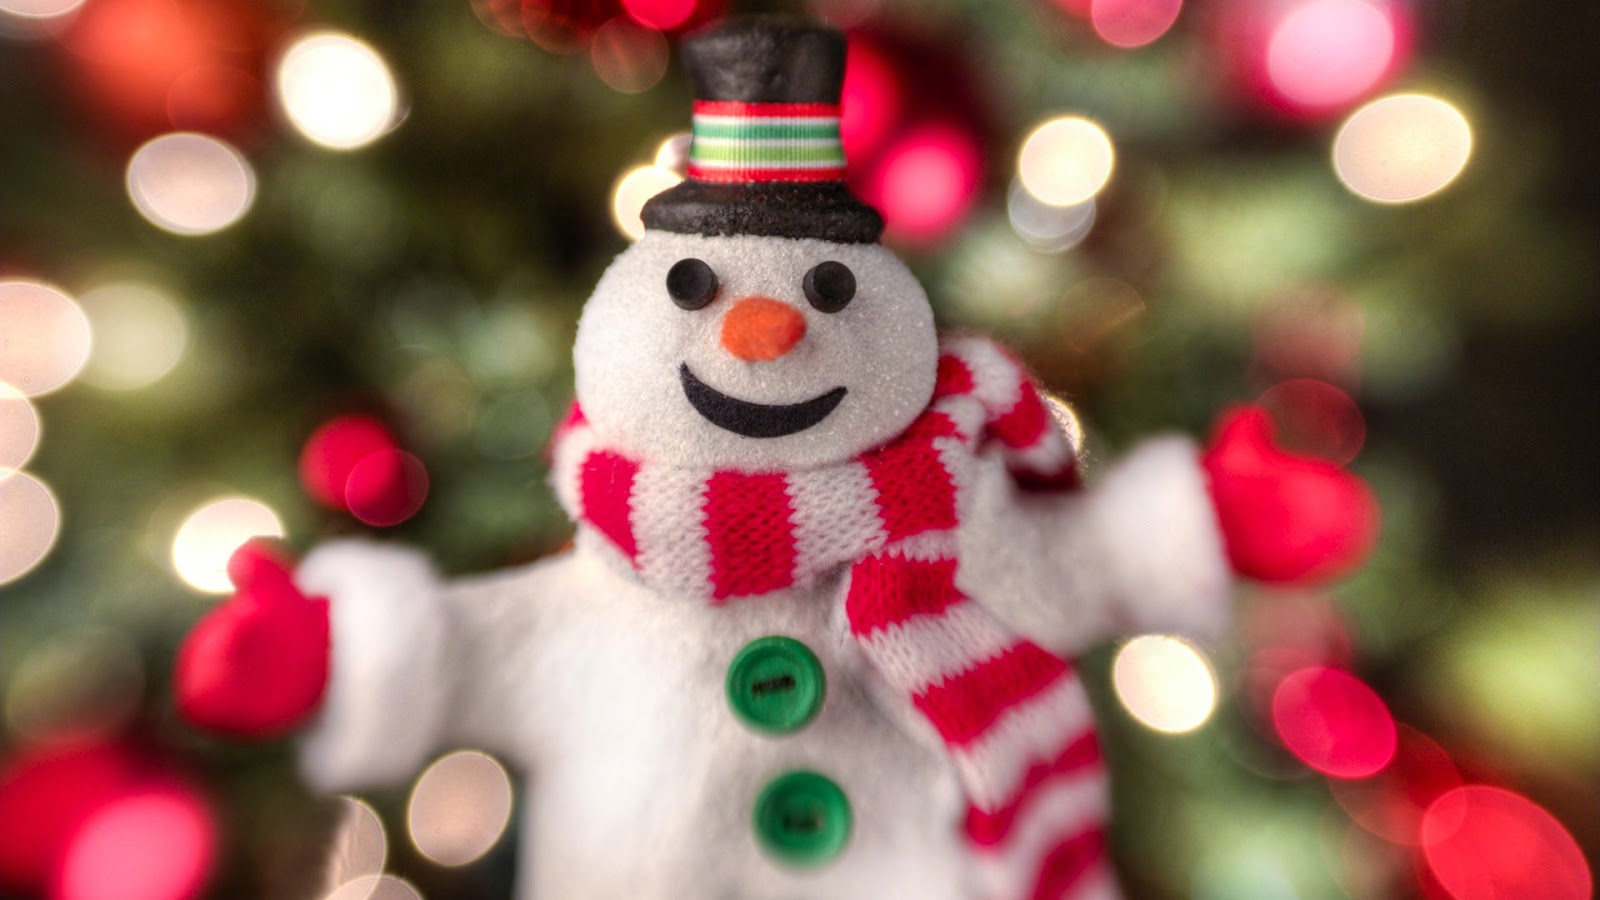 snowman-wallpaper-HD-for-desktop-Mac-laptop-mobile-tablet-free-download.jpg